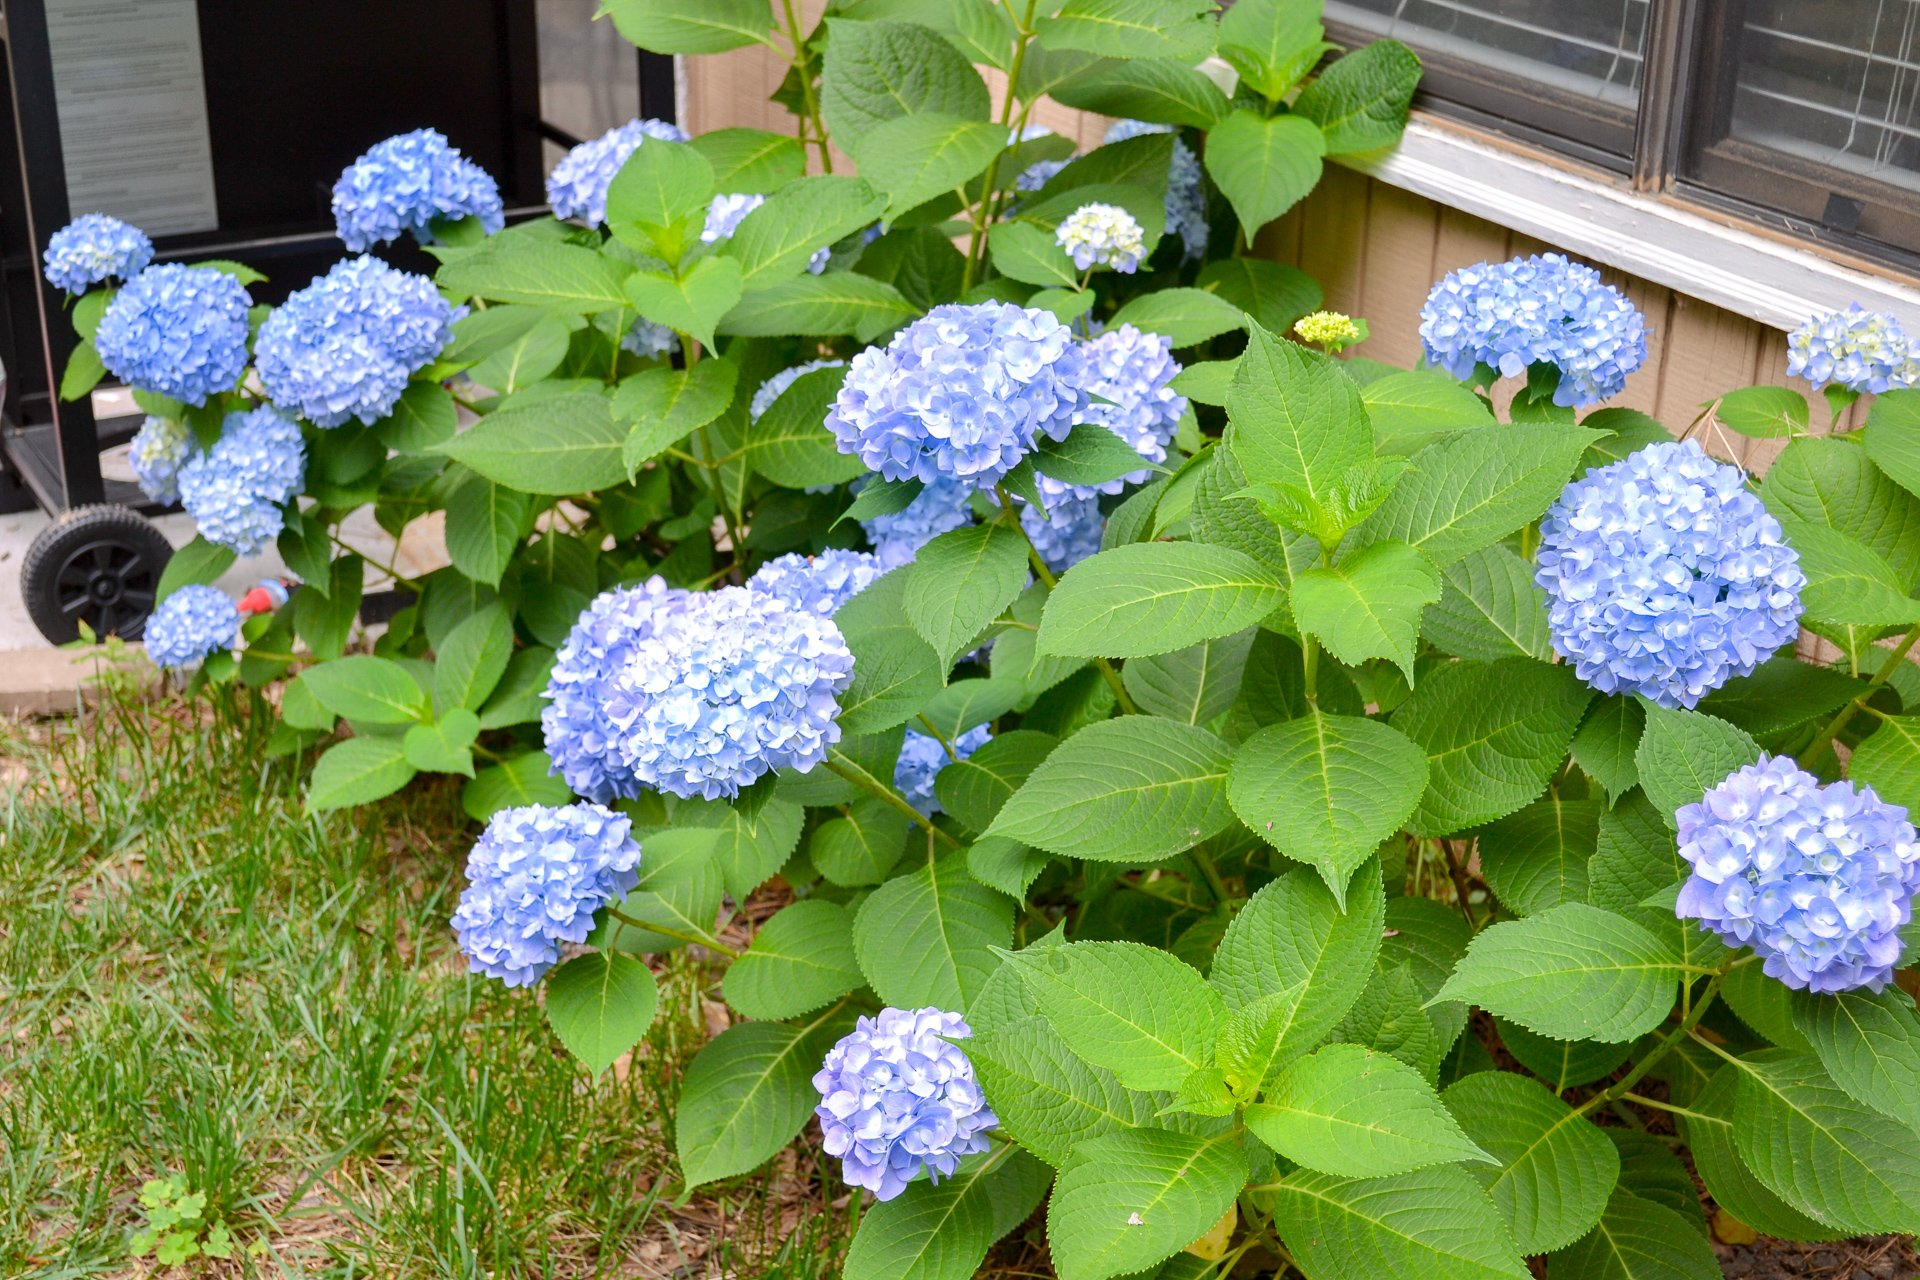 After a year of growth, these hydrangea shrubs with blue blooms are thriving!